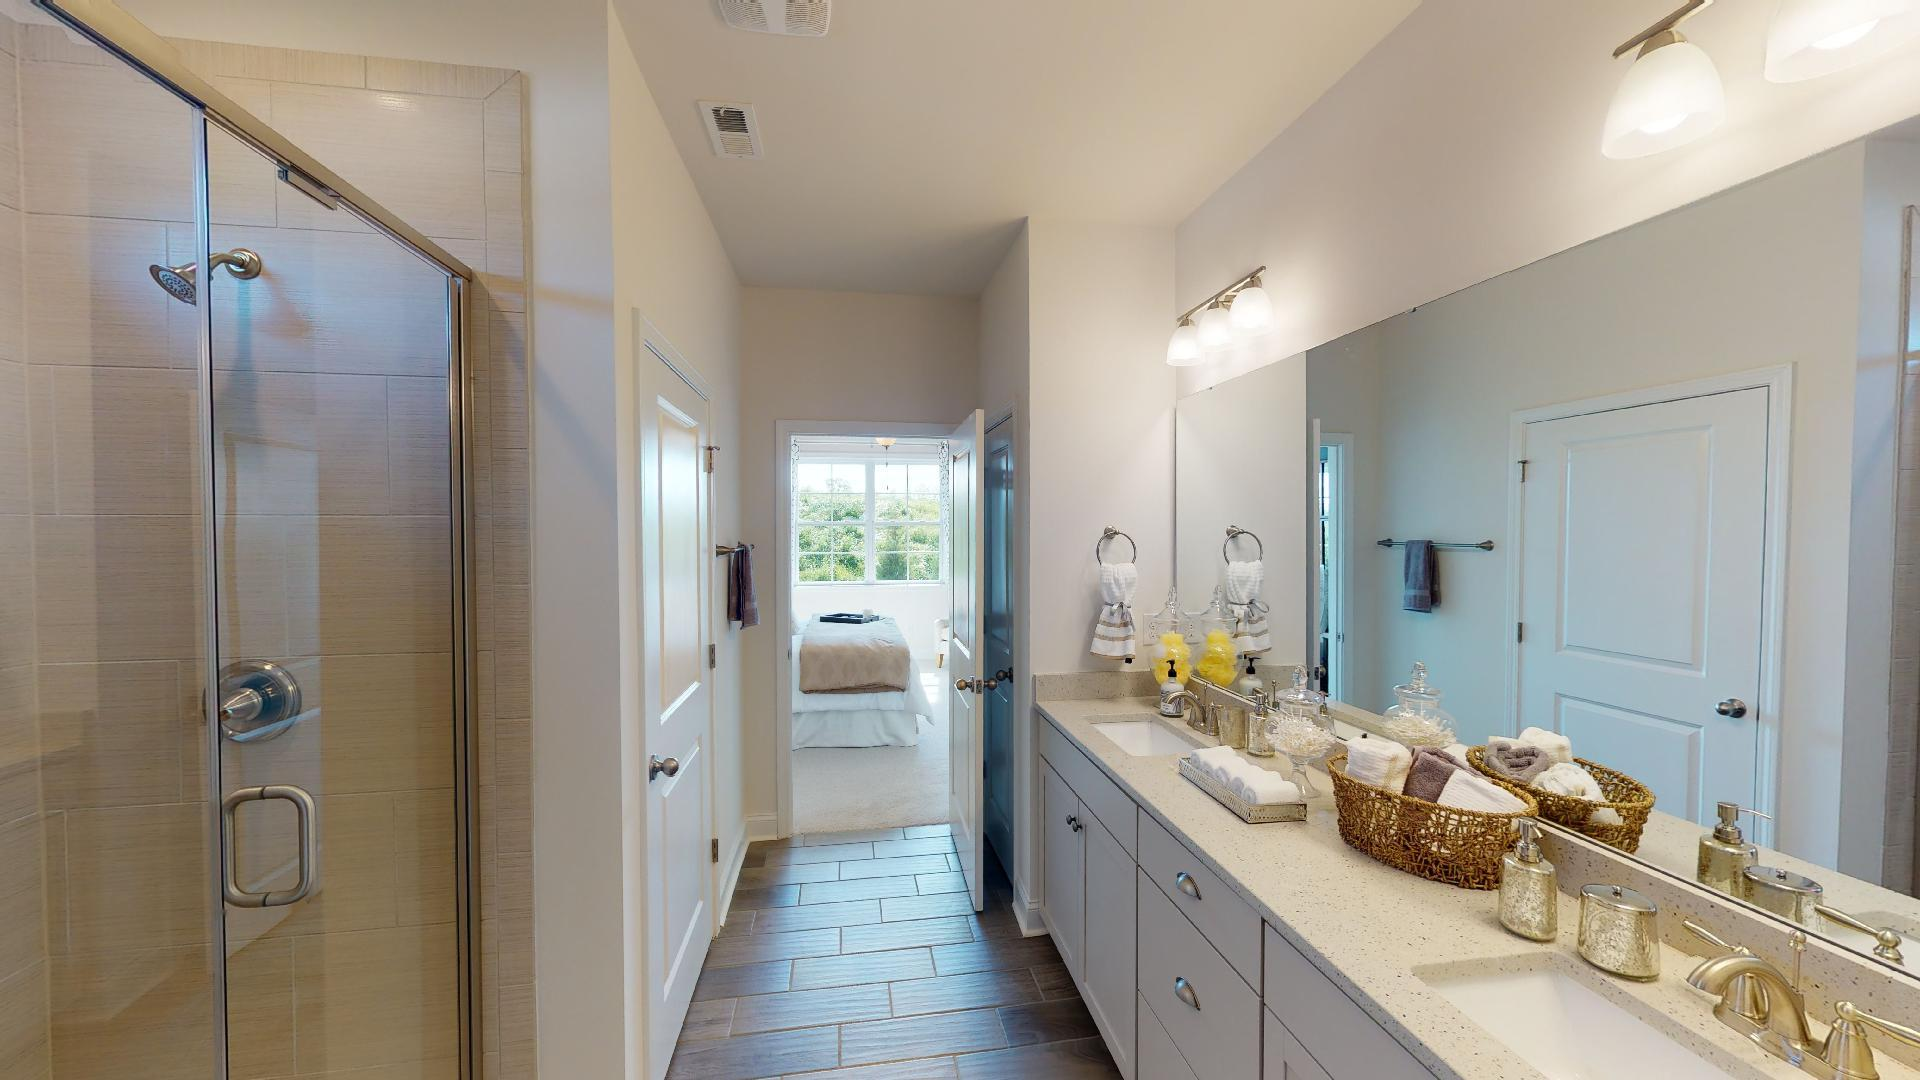 Bathroom featured in the Bristol By D.R. Horton in Hickory, NC